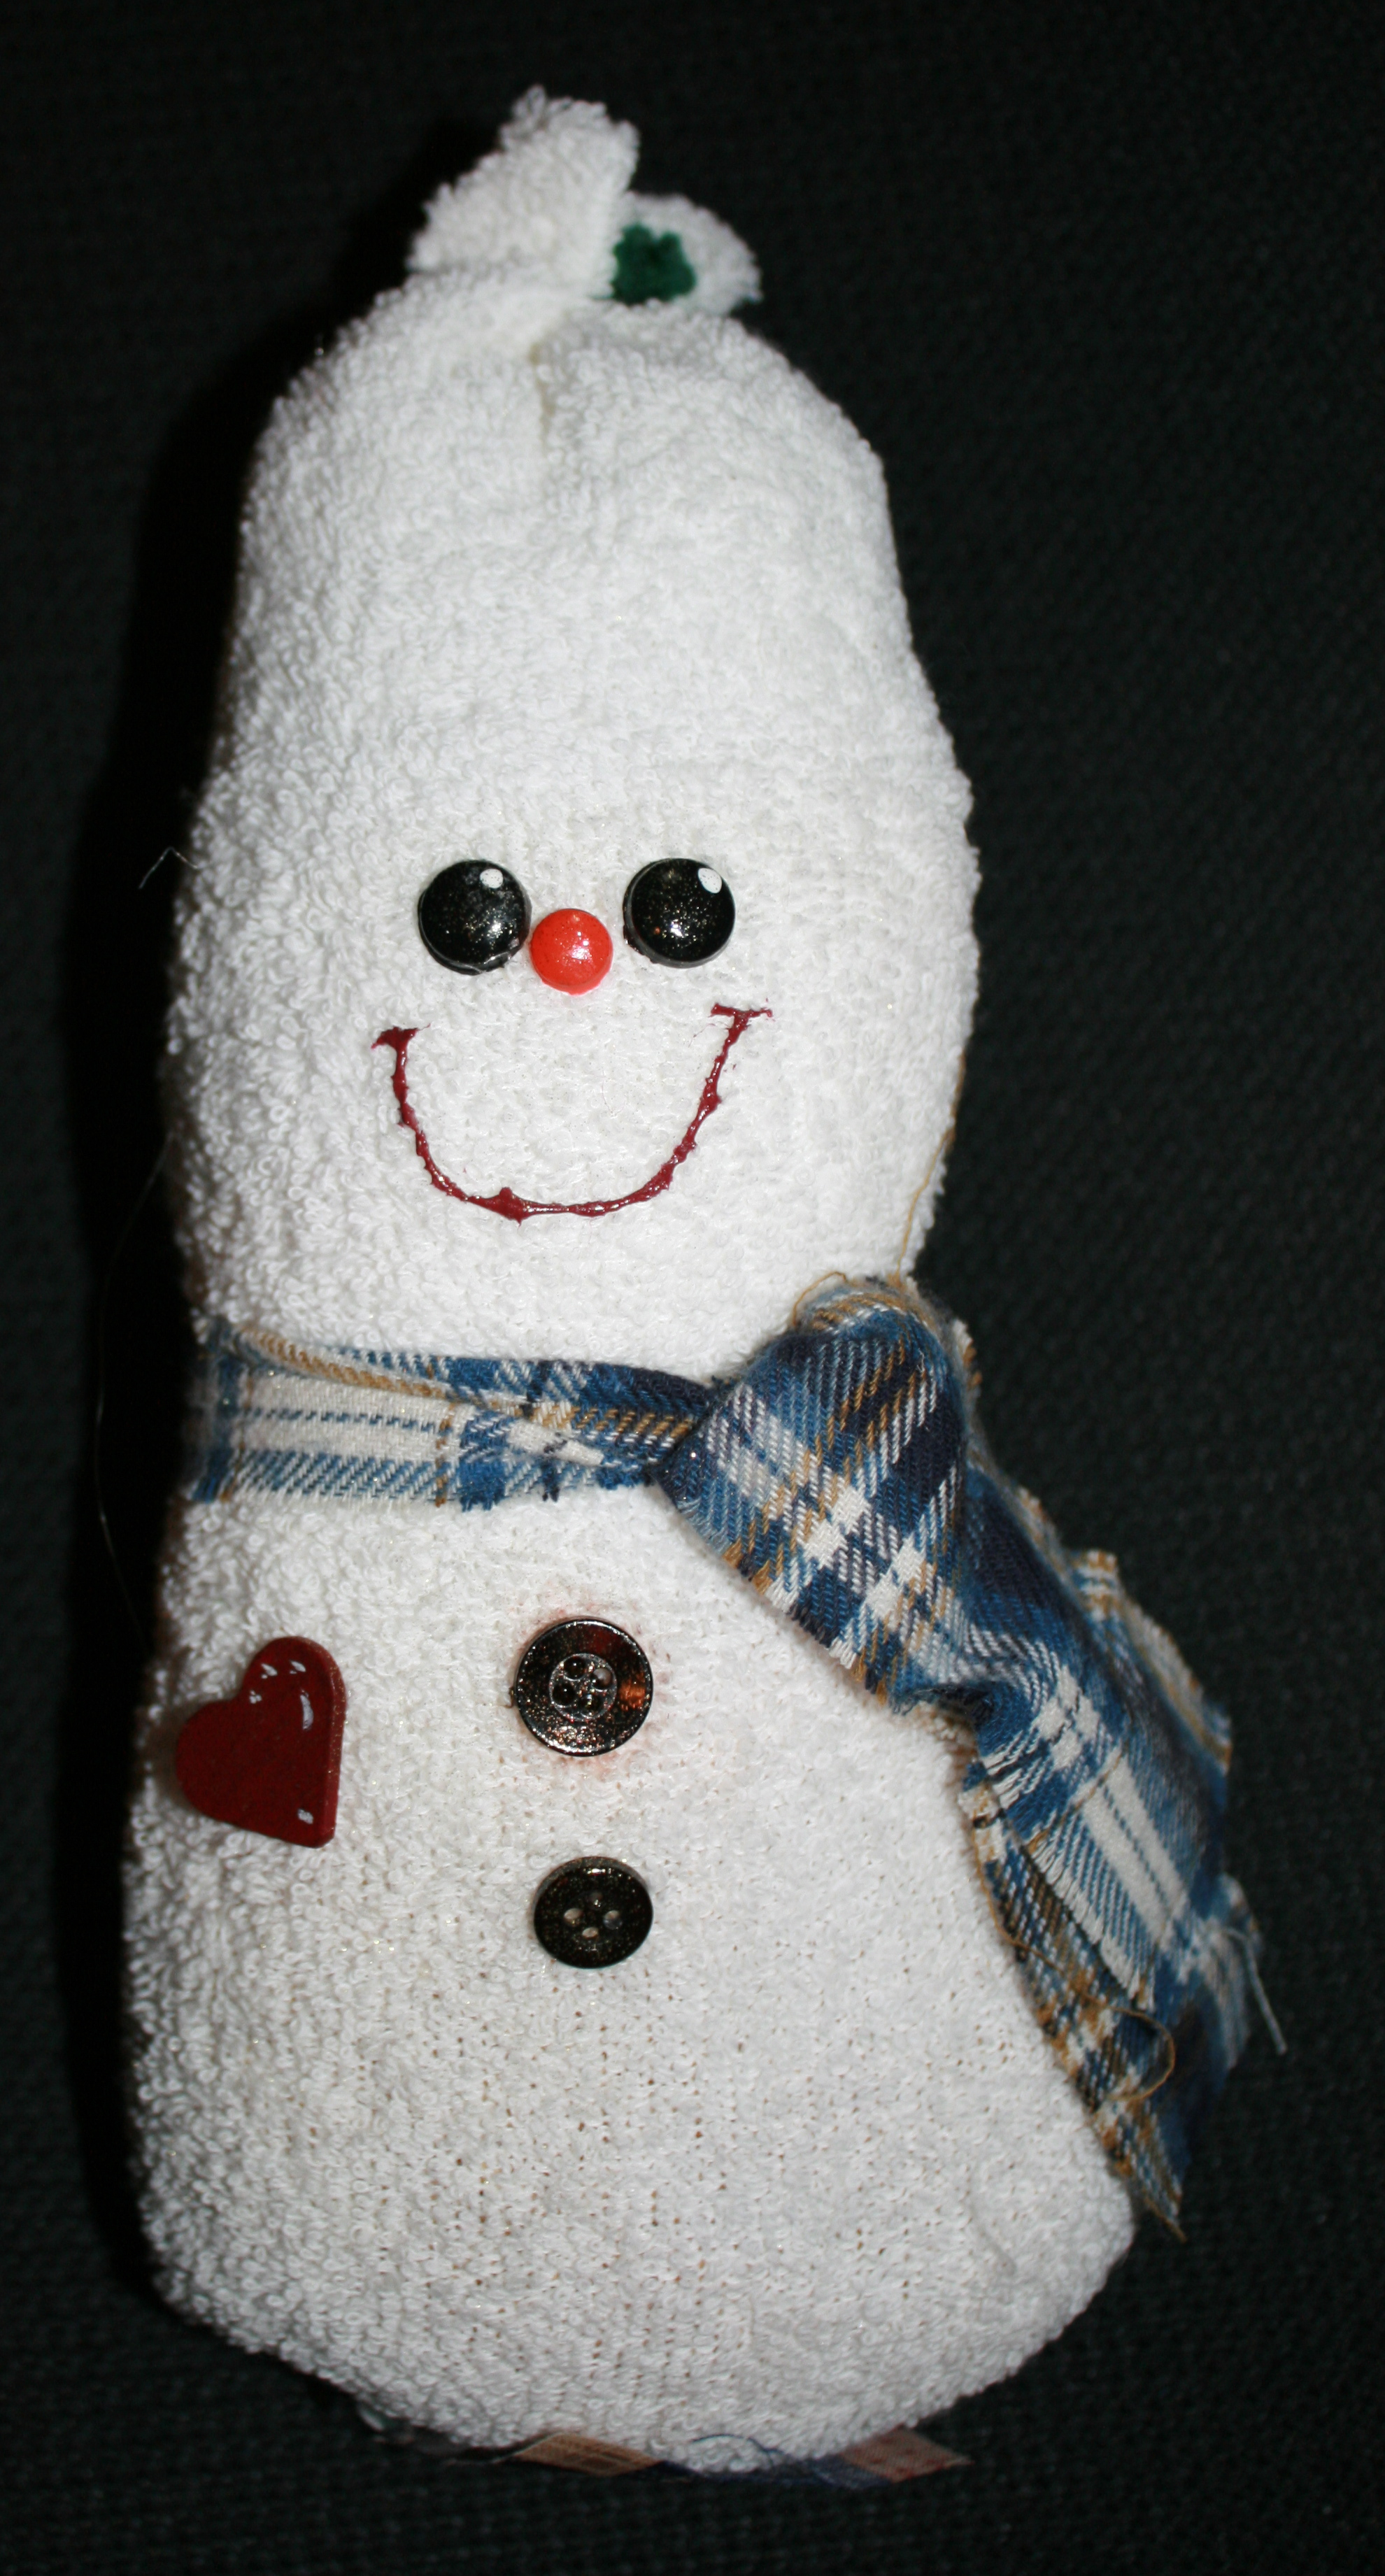 sock snowman, snowman crafts, snowman art project, snowman gifts, Christmas gifts, snowmen activities, snowman ideas, measurement activities, listening and following directions activities,